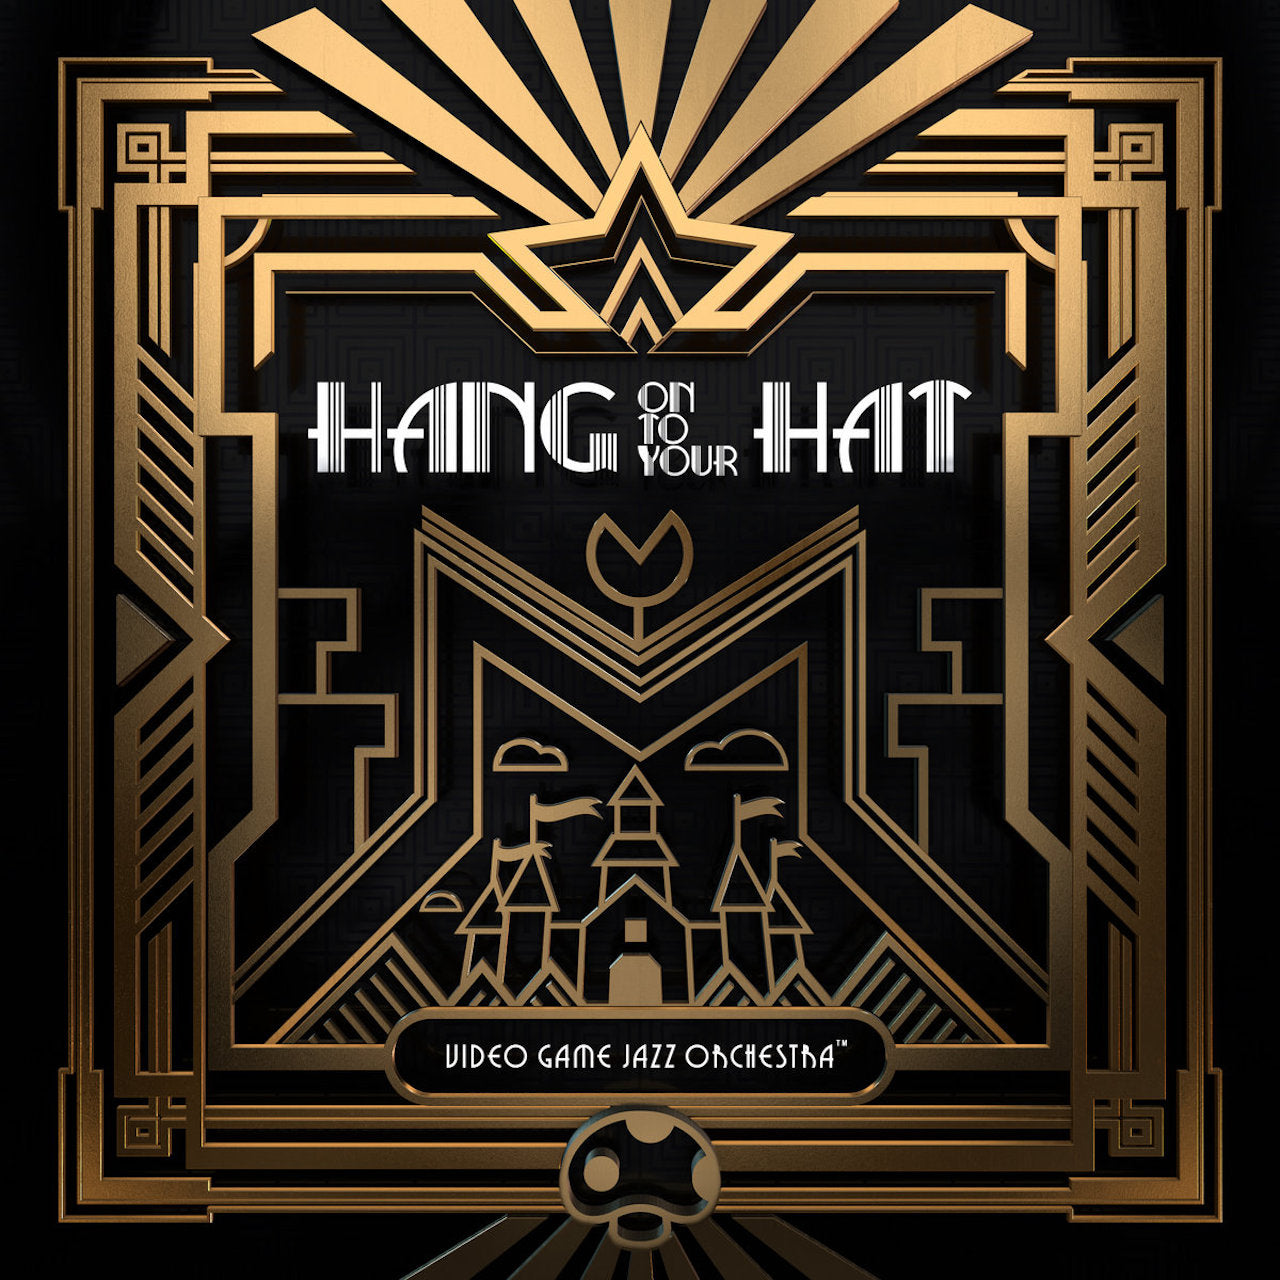 Hang on to Your Hat - Video Game Jazz Orchestra 2XLP